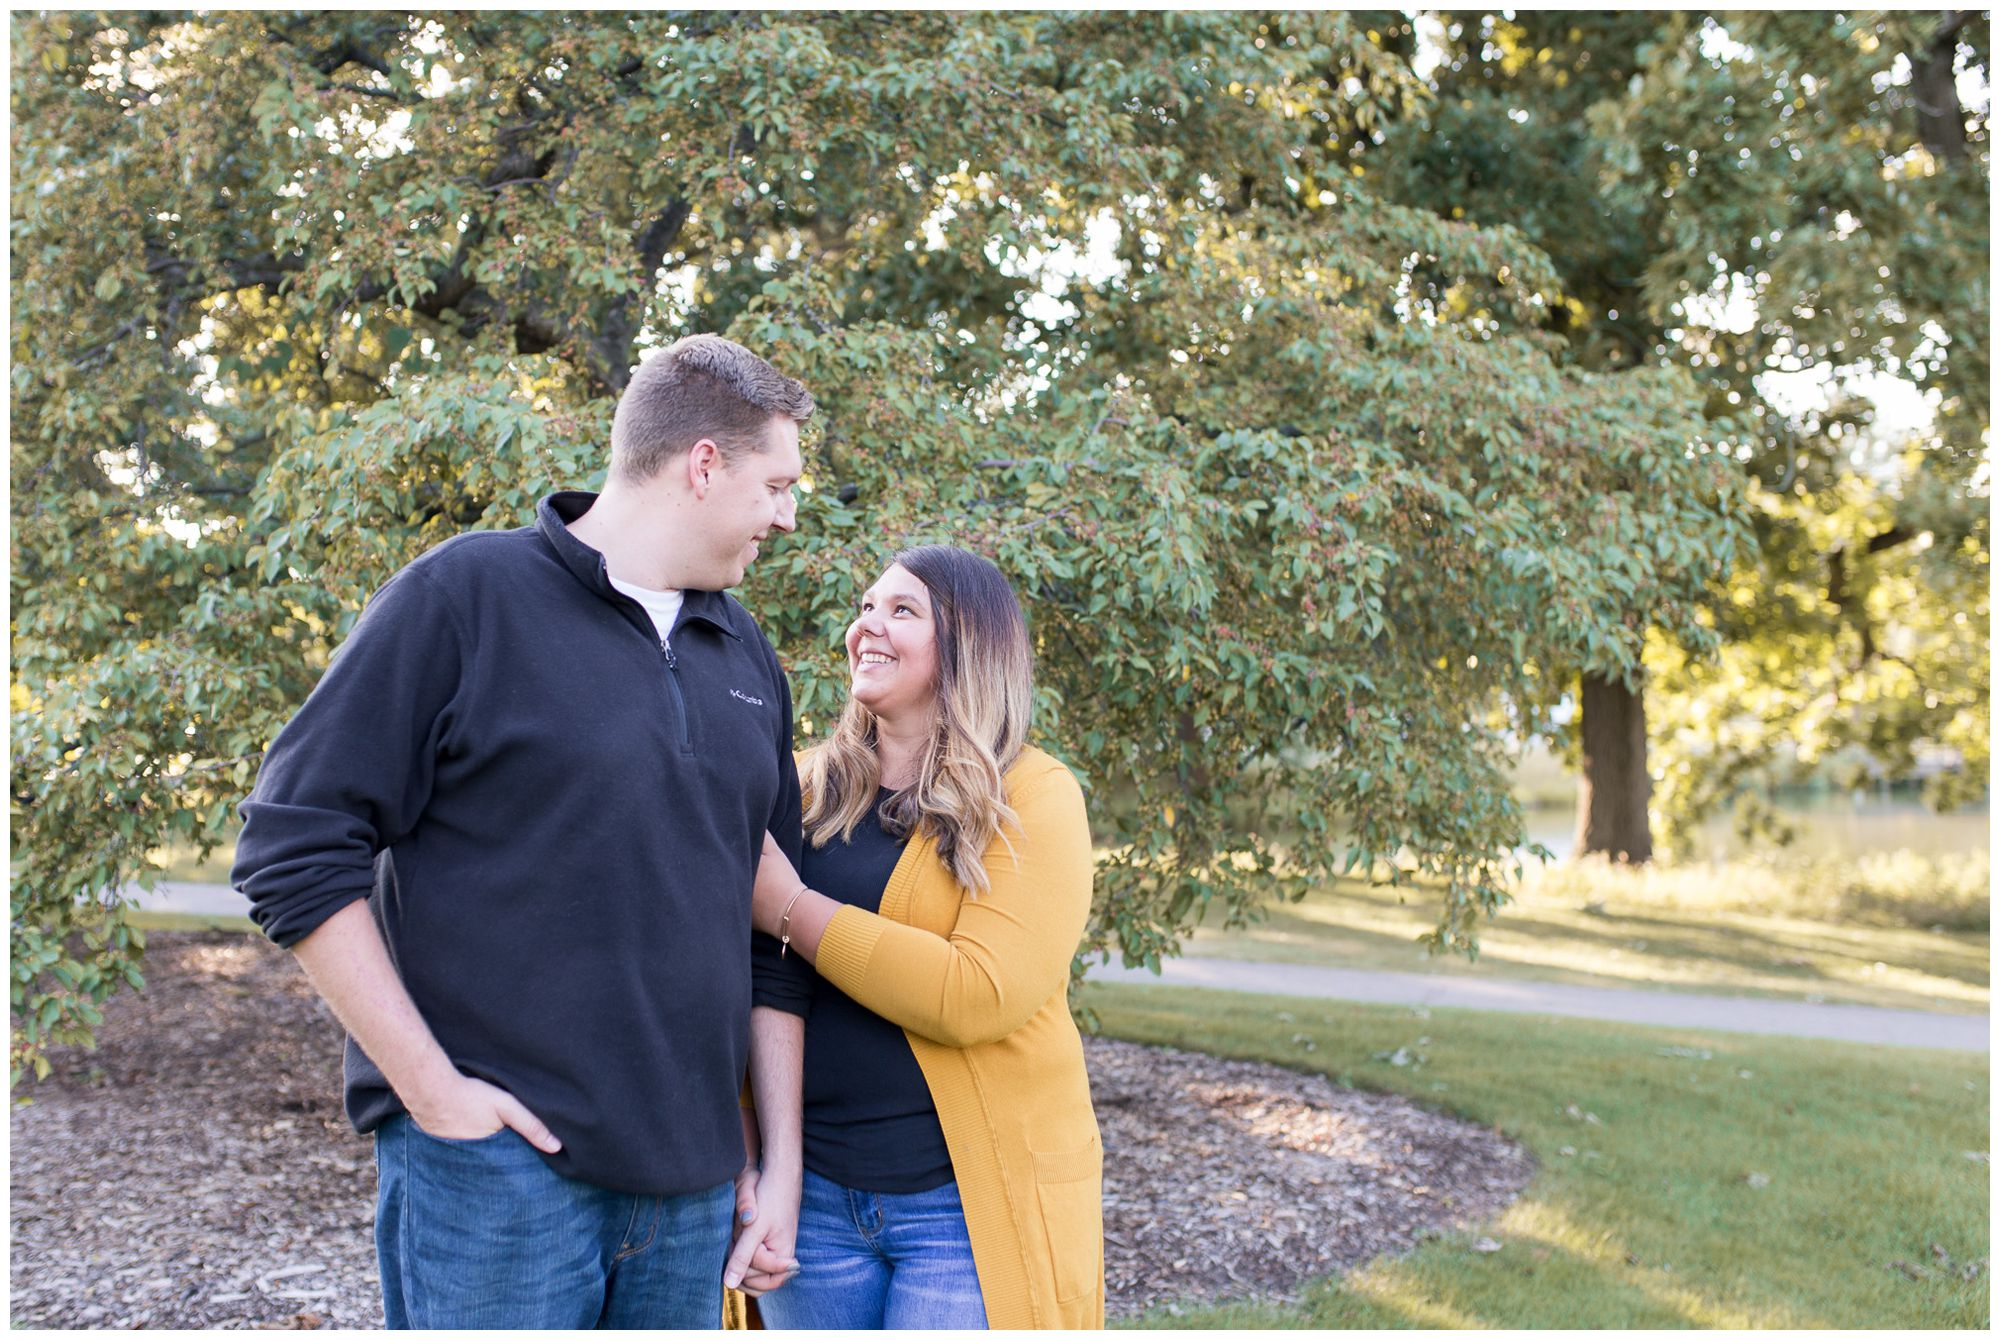 couples engagement session at Lakeside Park in Fort Wayne Indiana